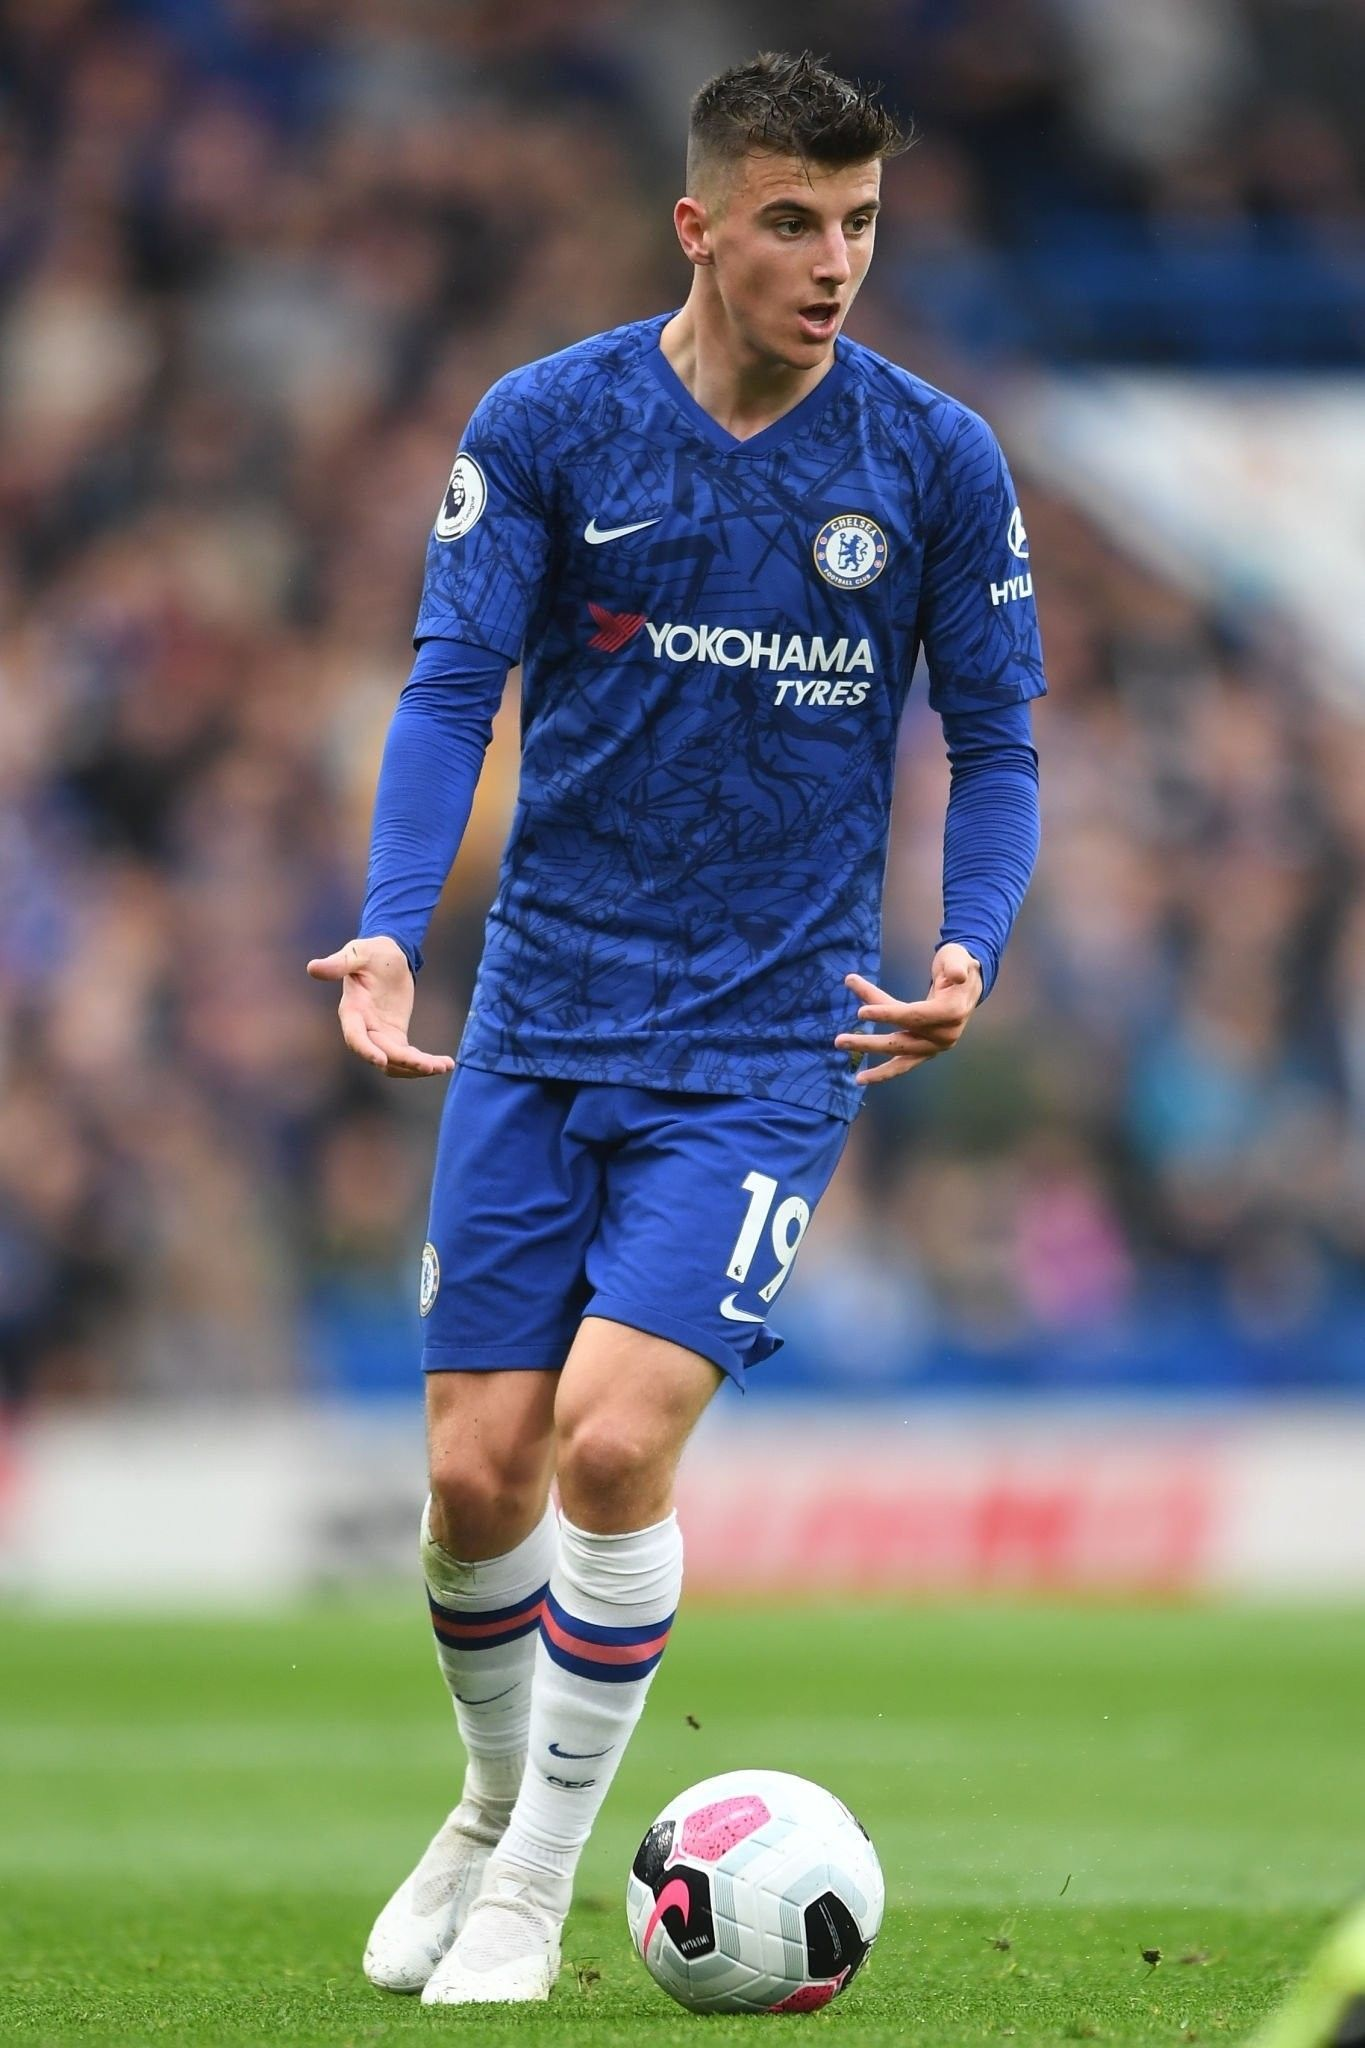 Mason Mount iPhone Wallpapers - Wallpaper Cave